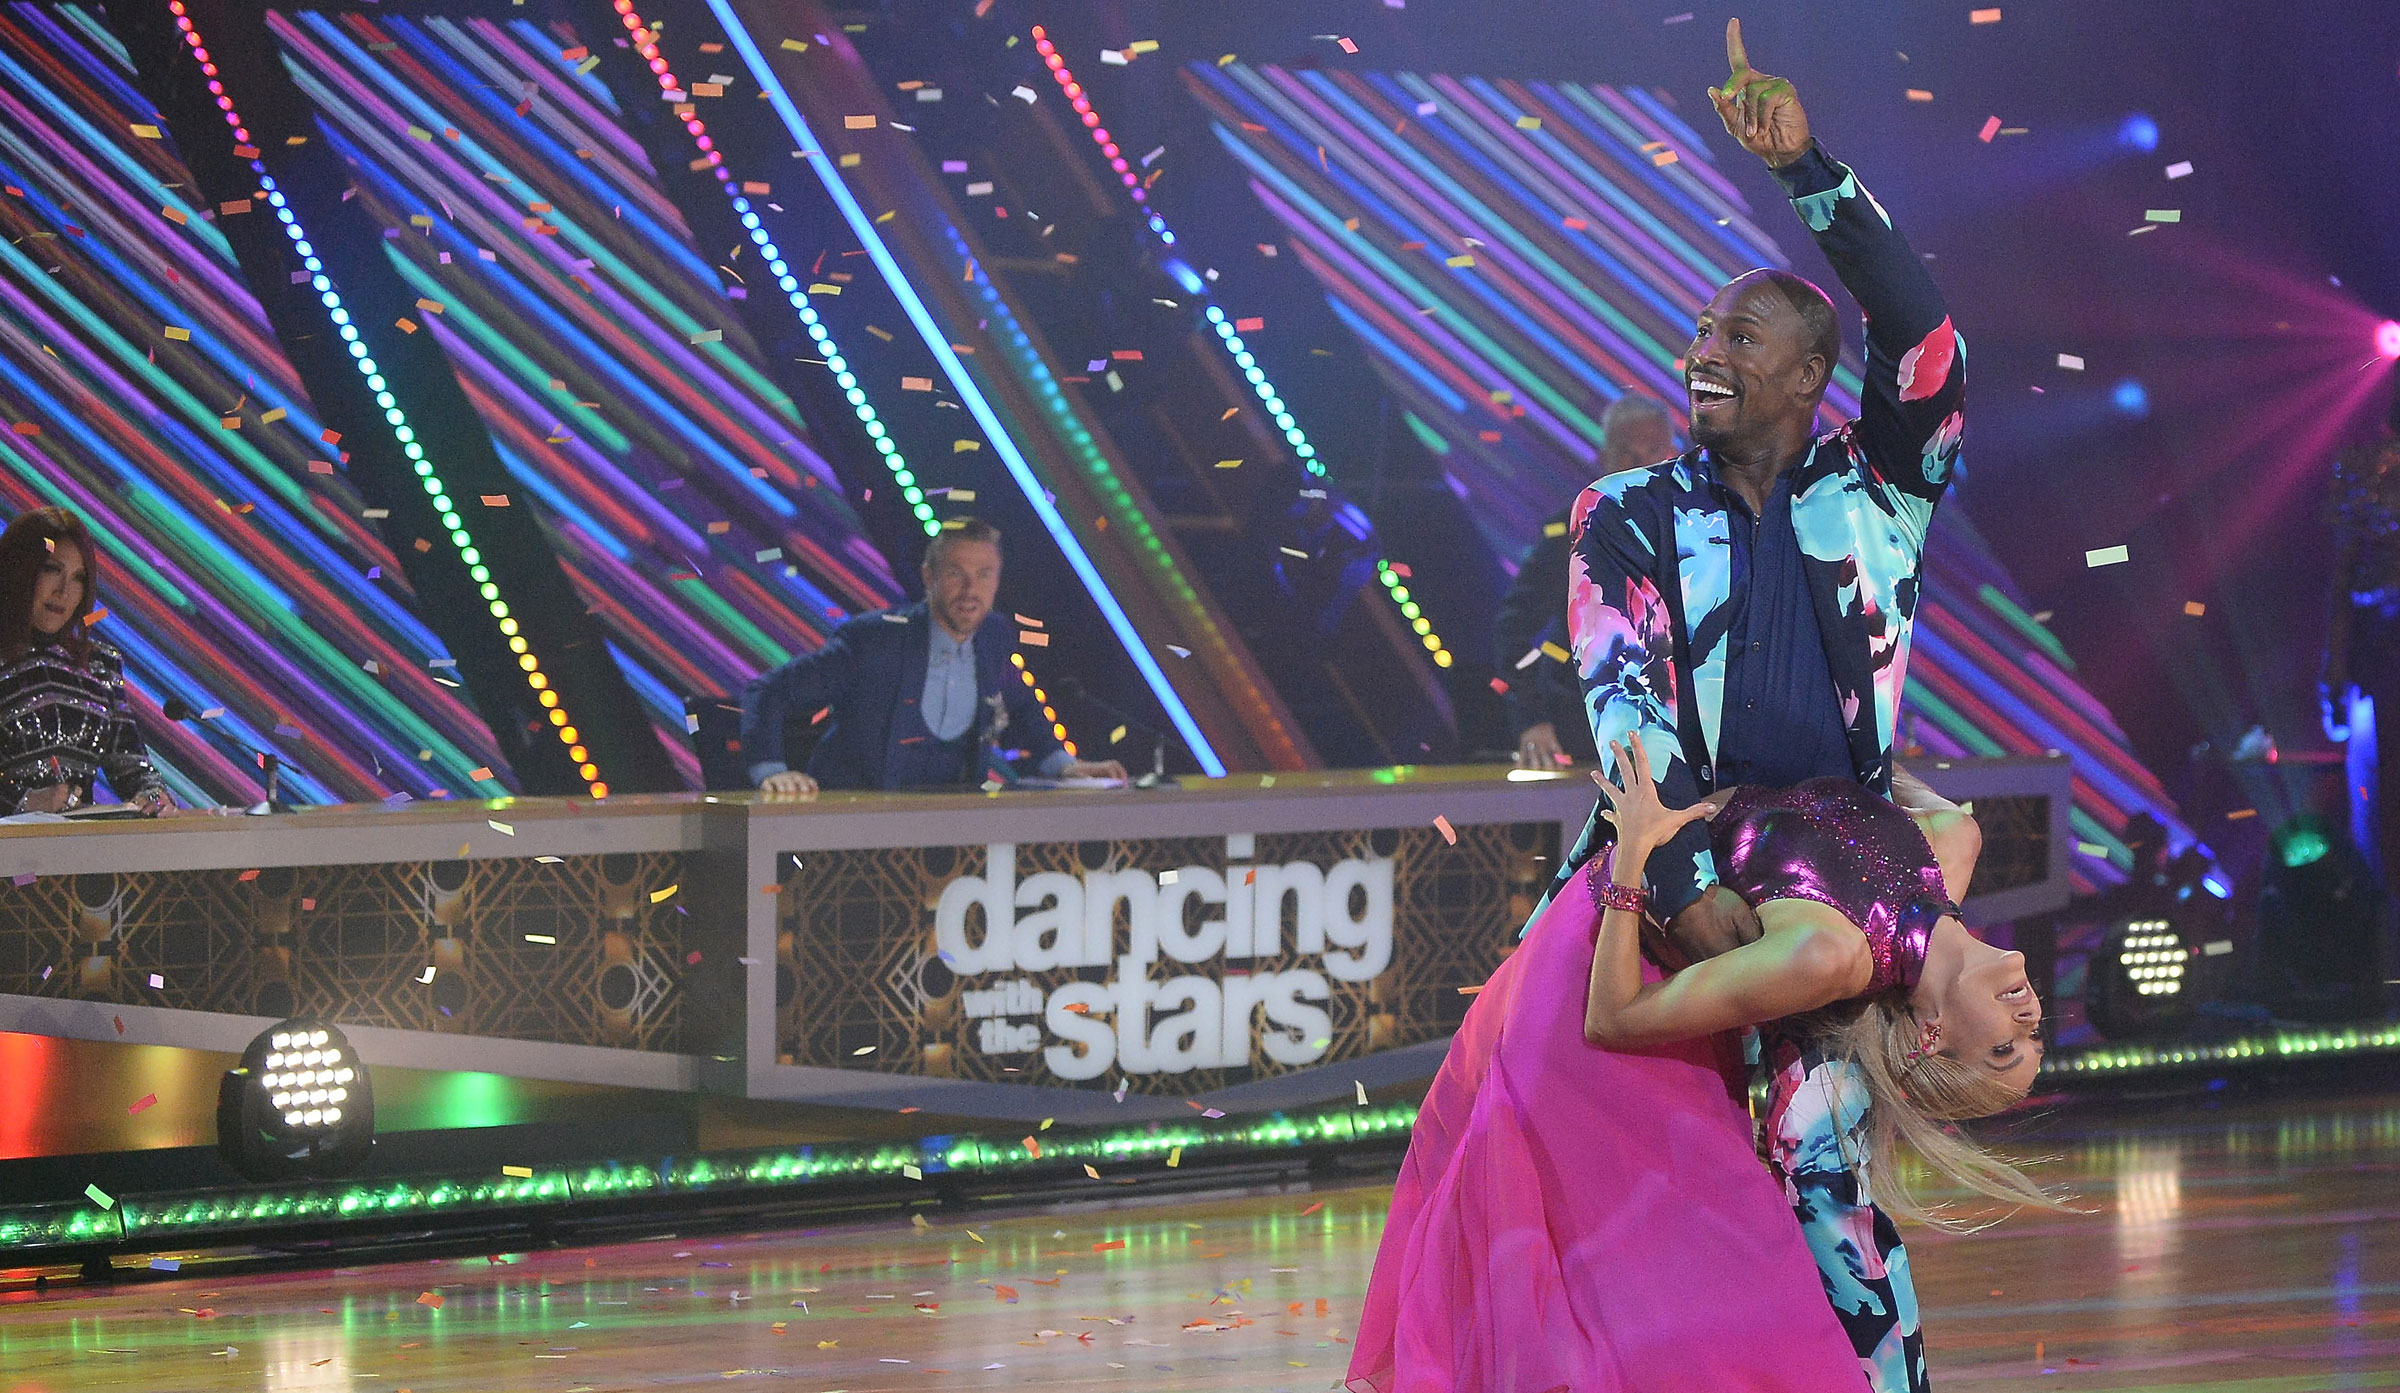 Was Vernon Davis robbed on 'Dancing with the Stars'? Most fans say he should've stayed in the competition [POLL RESULTS]